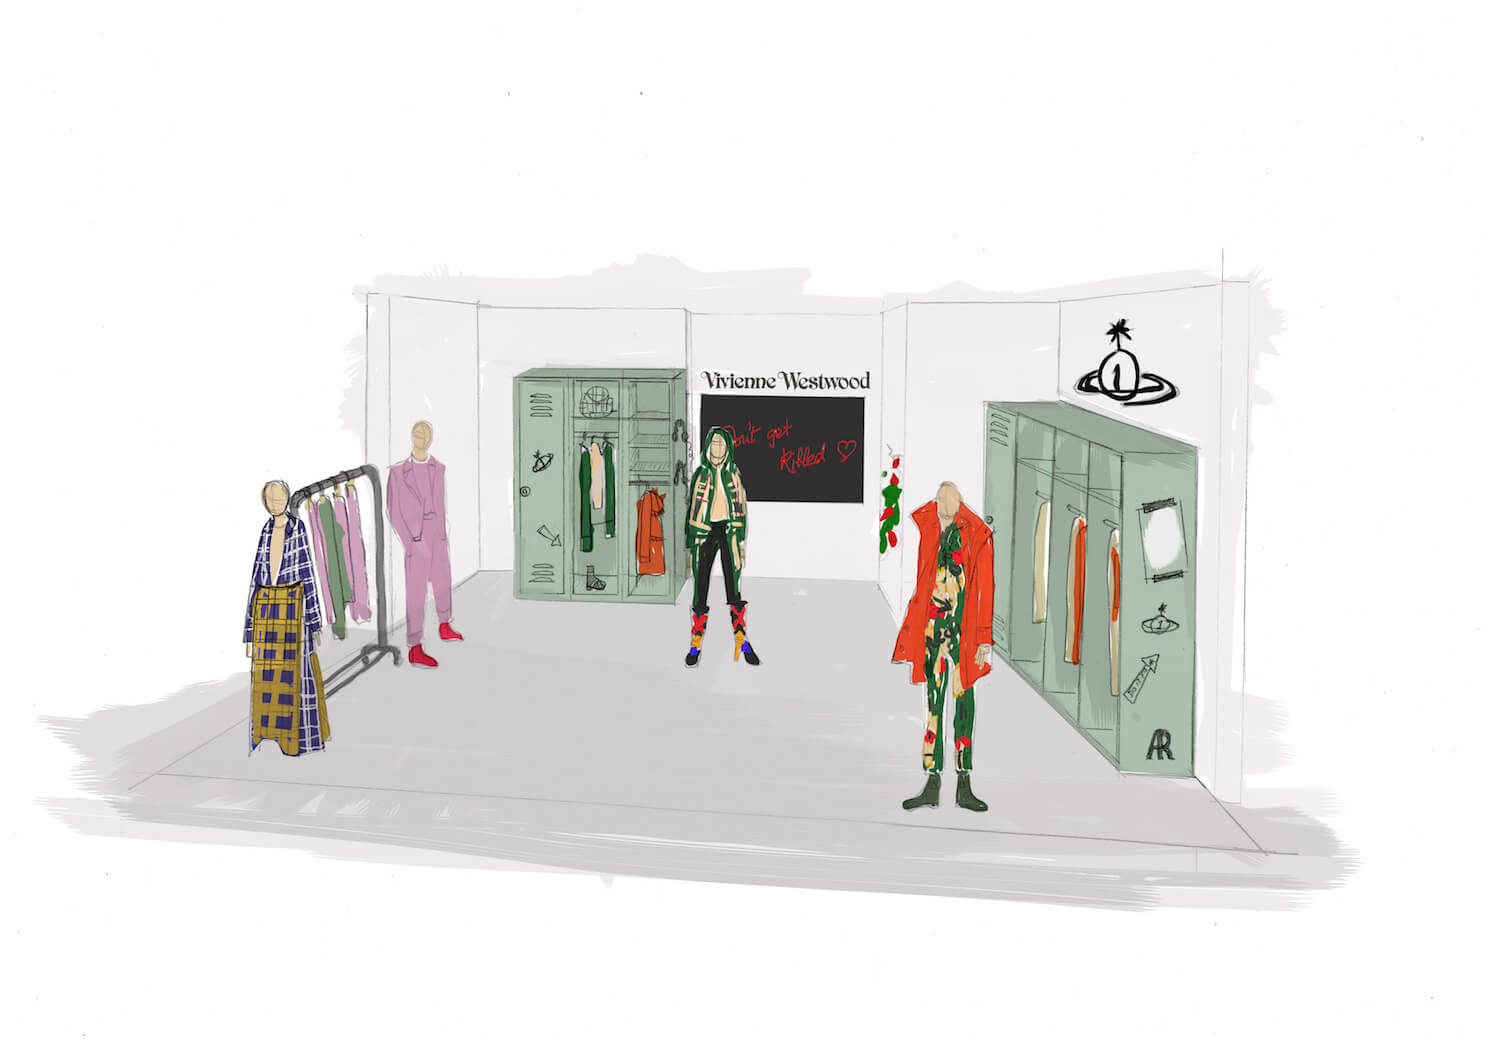 selfridges sketch visual